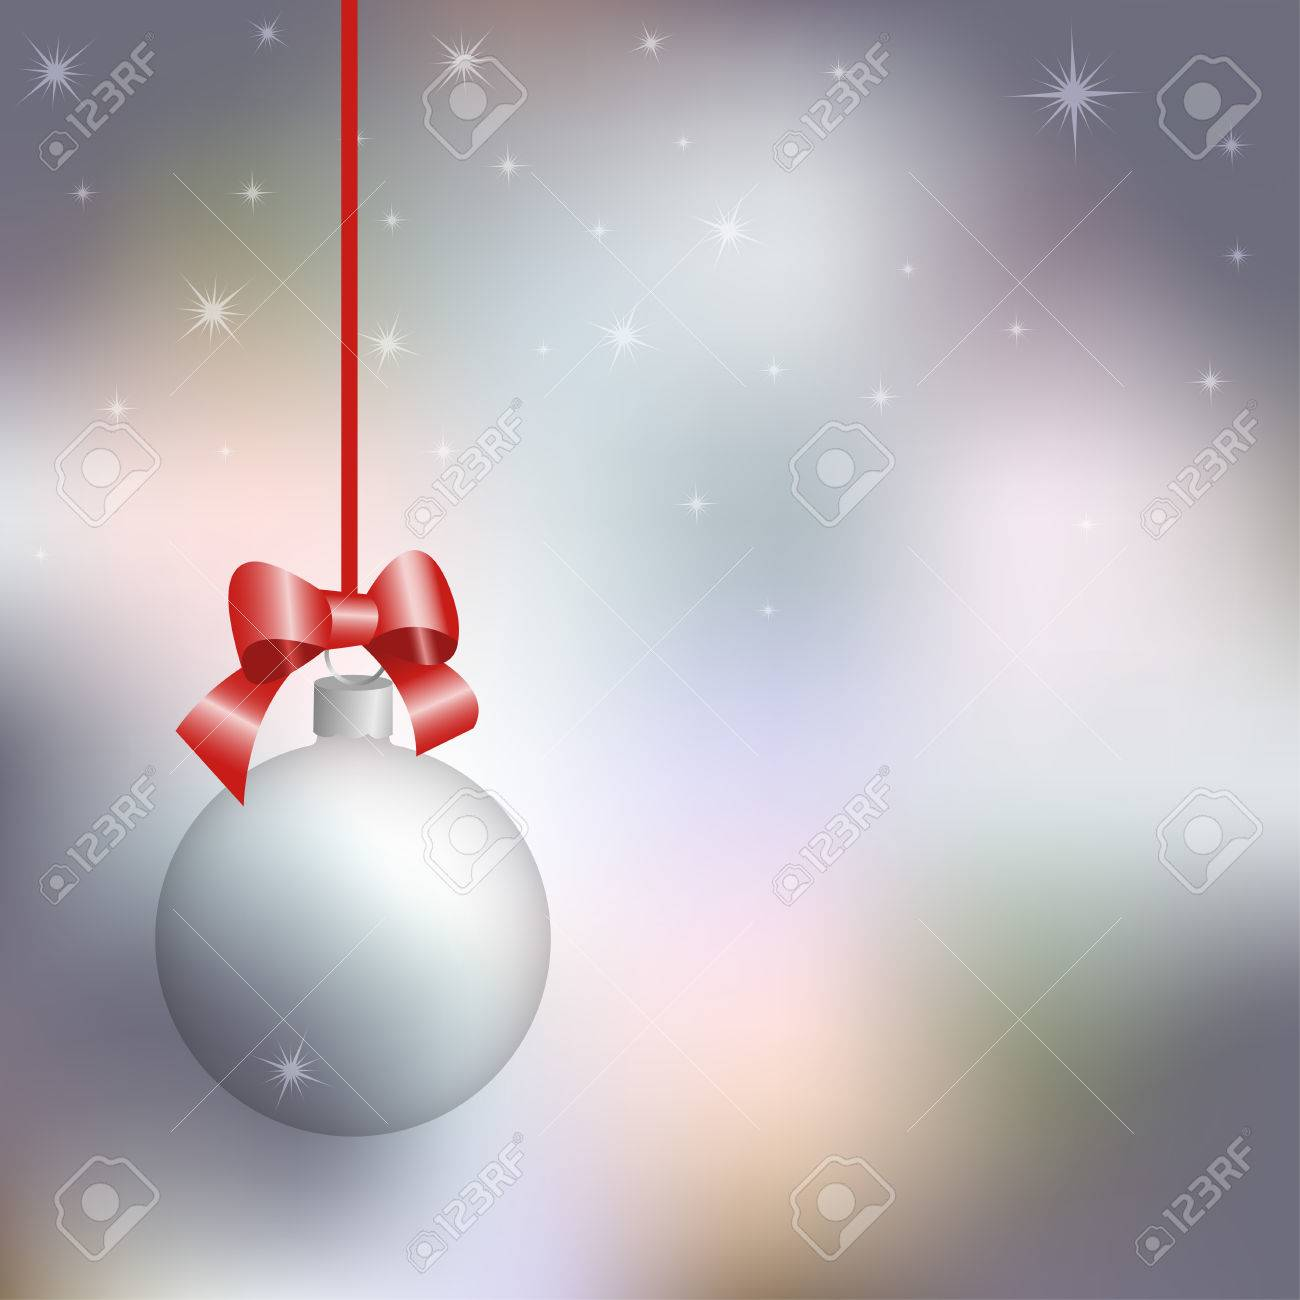 New Year card, transparent Christmas ball against the background of the winter sky, vector illustration - 49995311